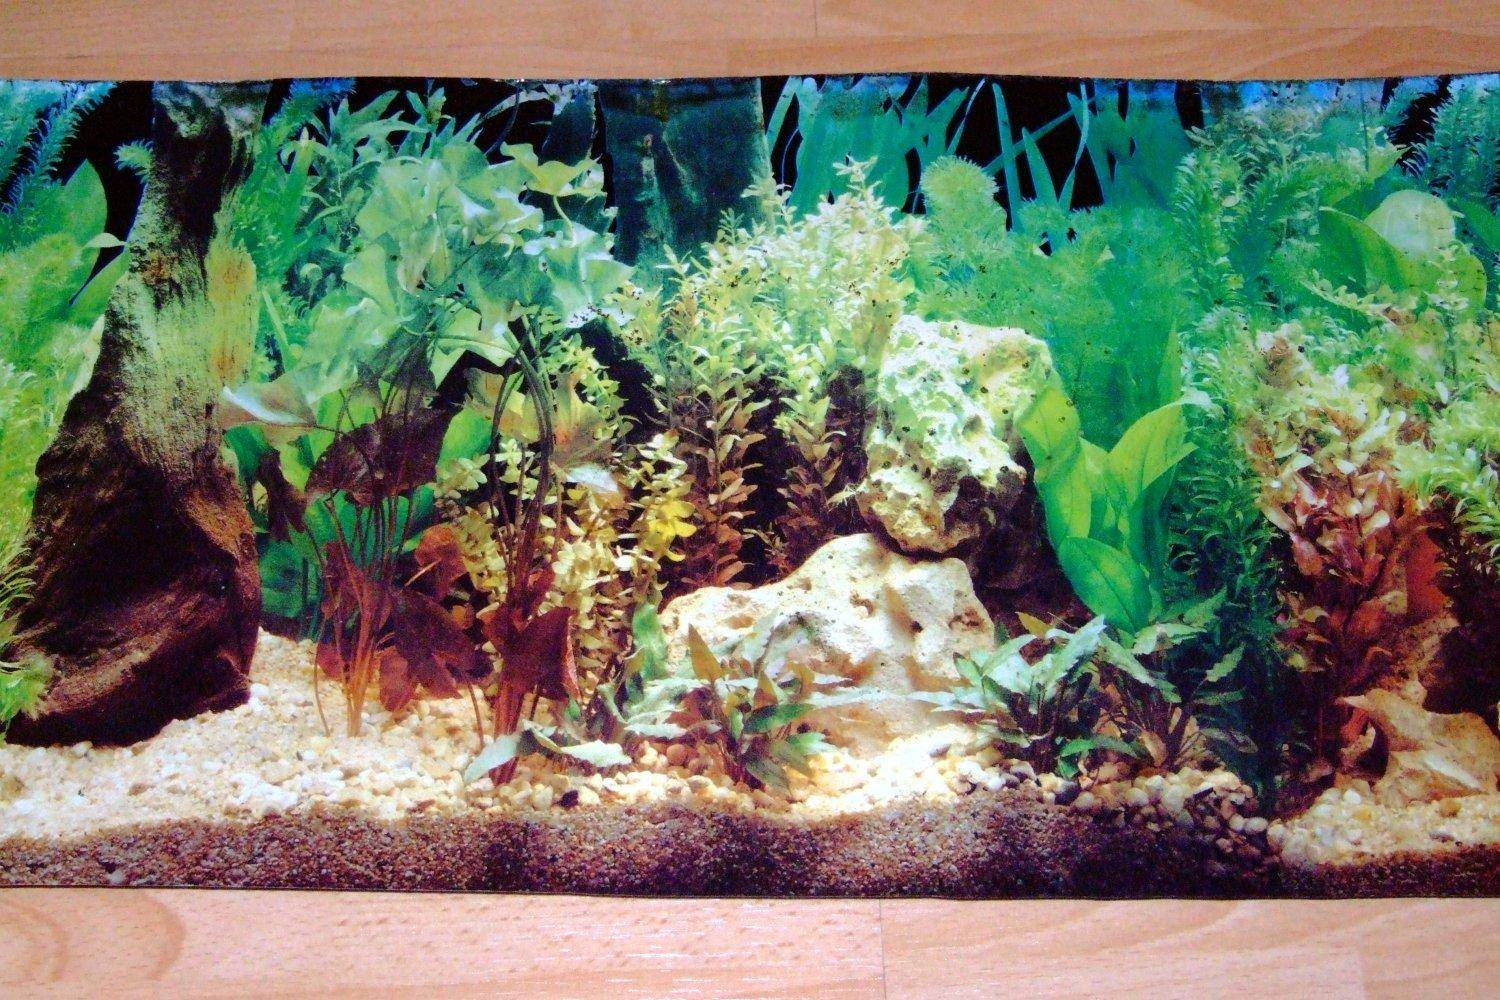 Fish tank painting - Aquarium Background Resized Image 1 Aquarium Background Resized Image 2